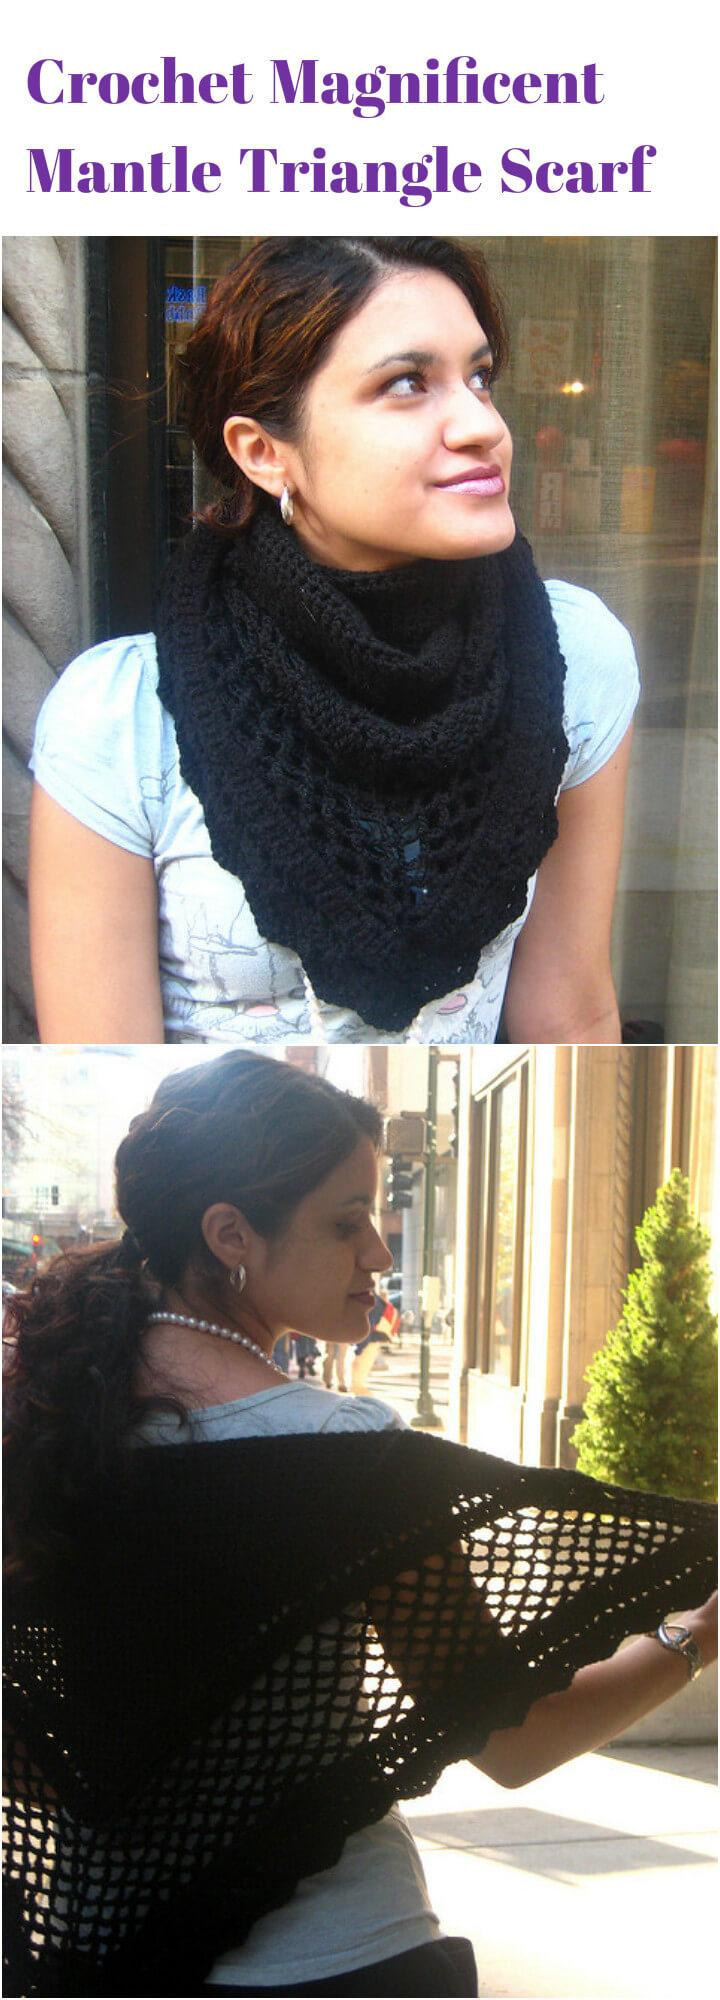 free crochet magnificent mantle triangle scarf pattern